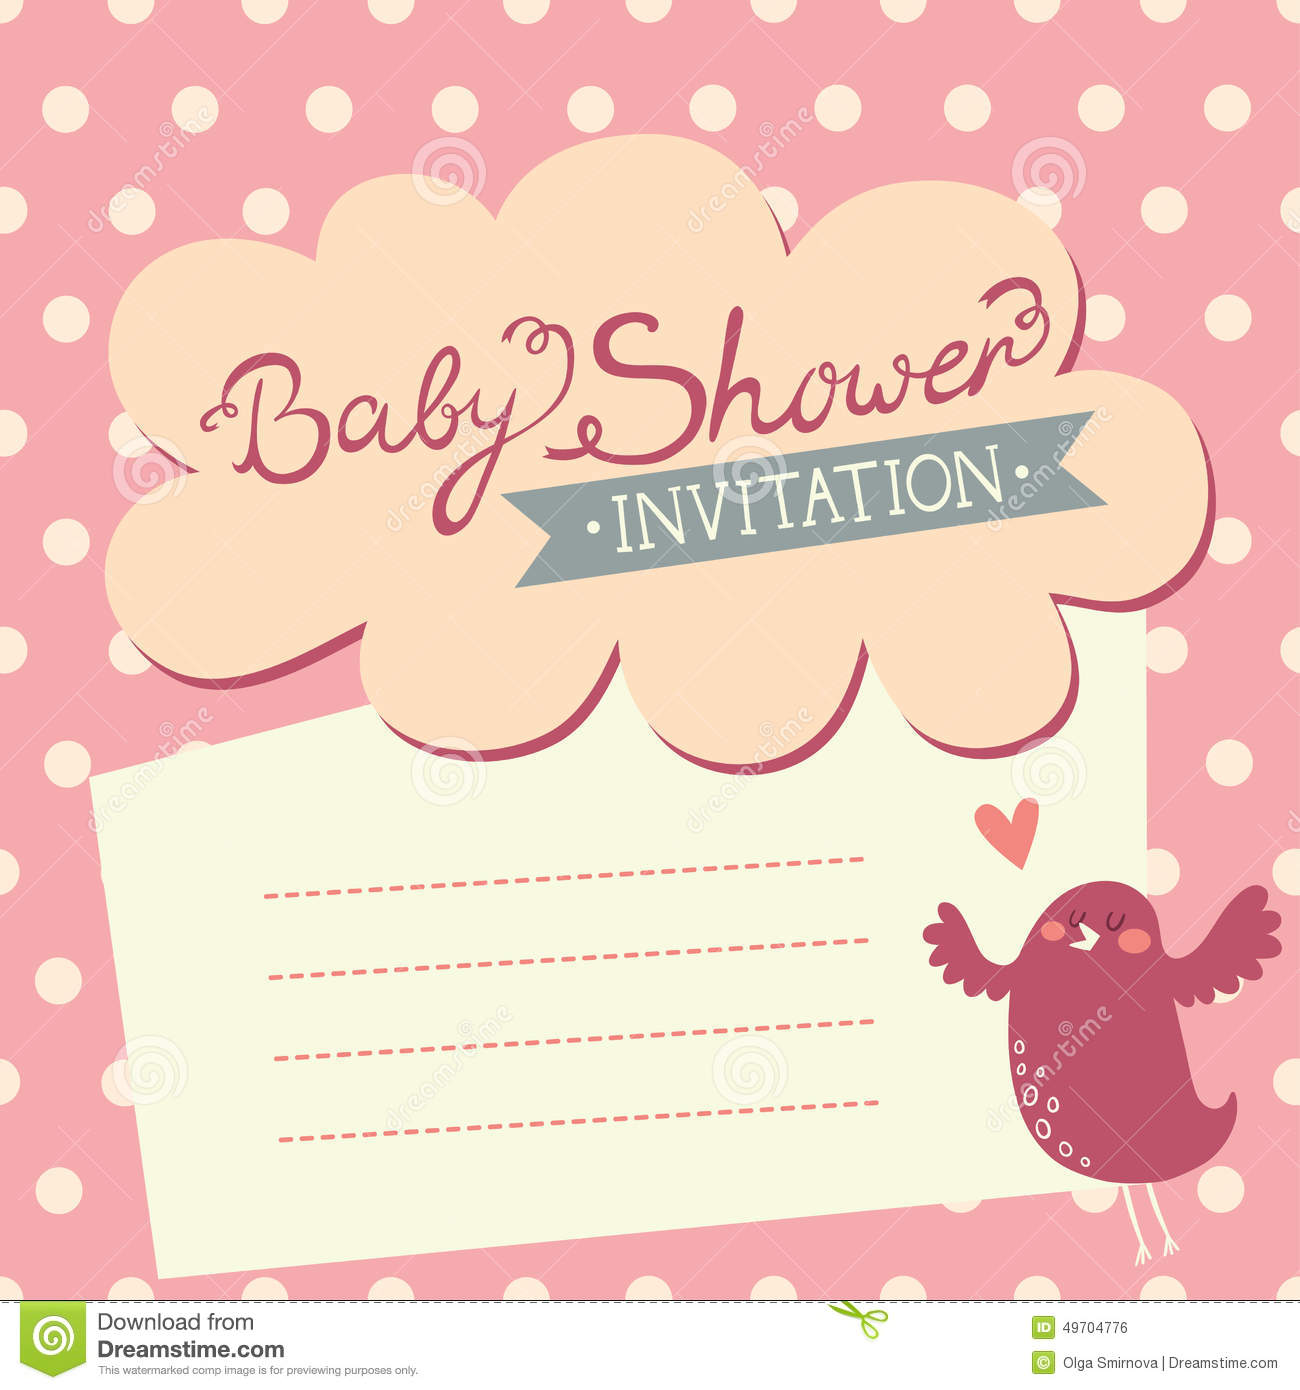 Baby Shower Invitation With Cute Bird Stock Vector - Illustration of ...